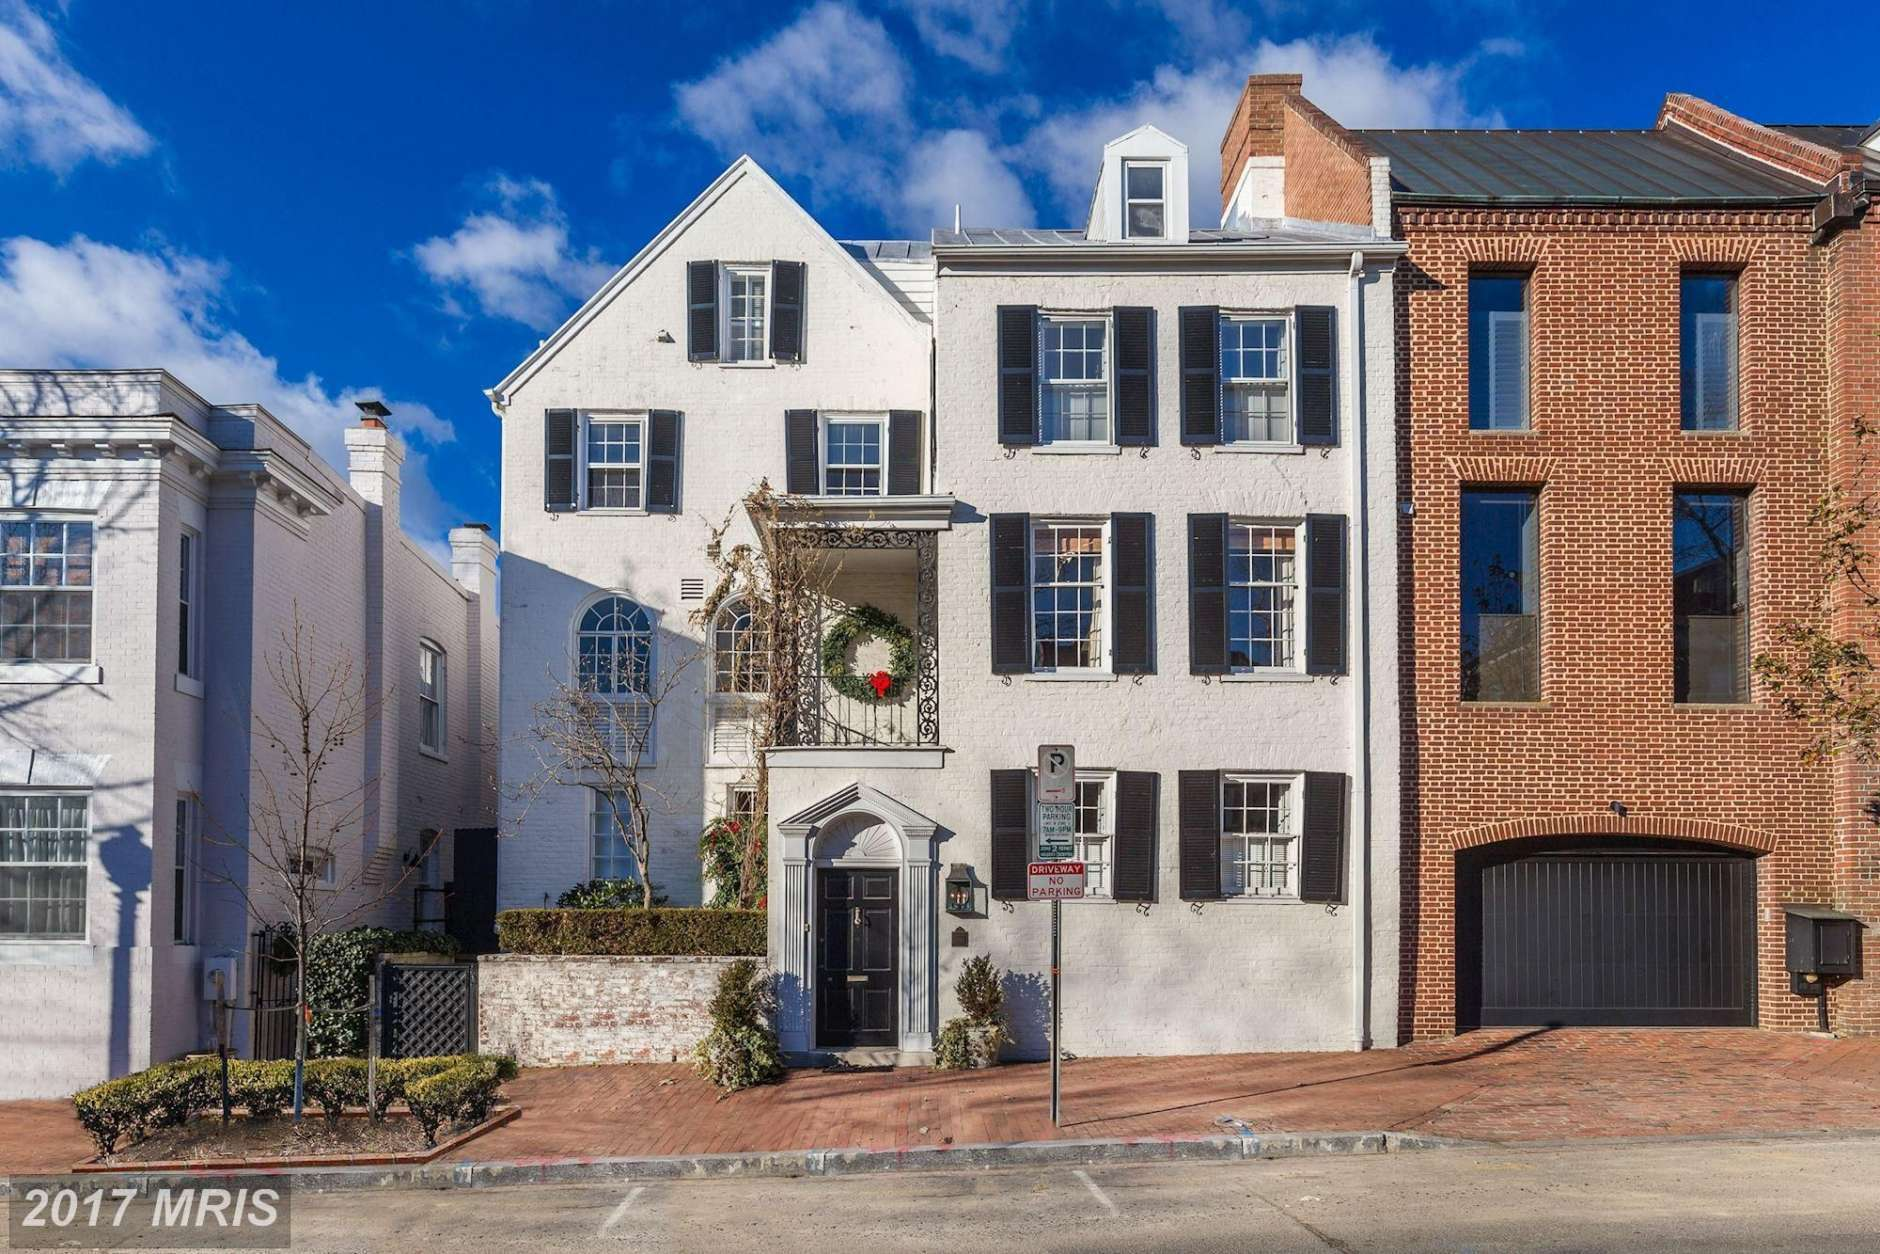 4. $4,600,000  1314 28th St. NW; Washington, D.C.  This attached row house built in 1801 has five baths, two half baths and six bedrooms. (Courtesy MRIS, a Bright MLS)